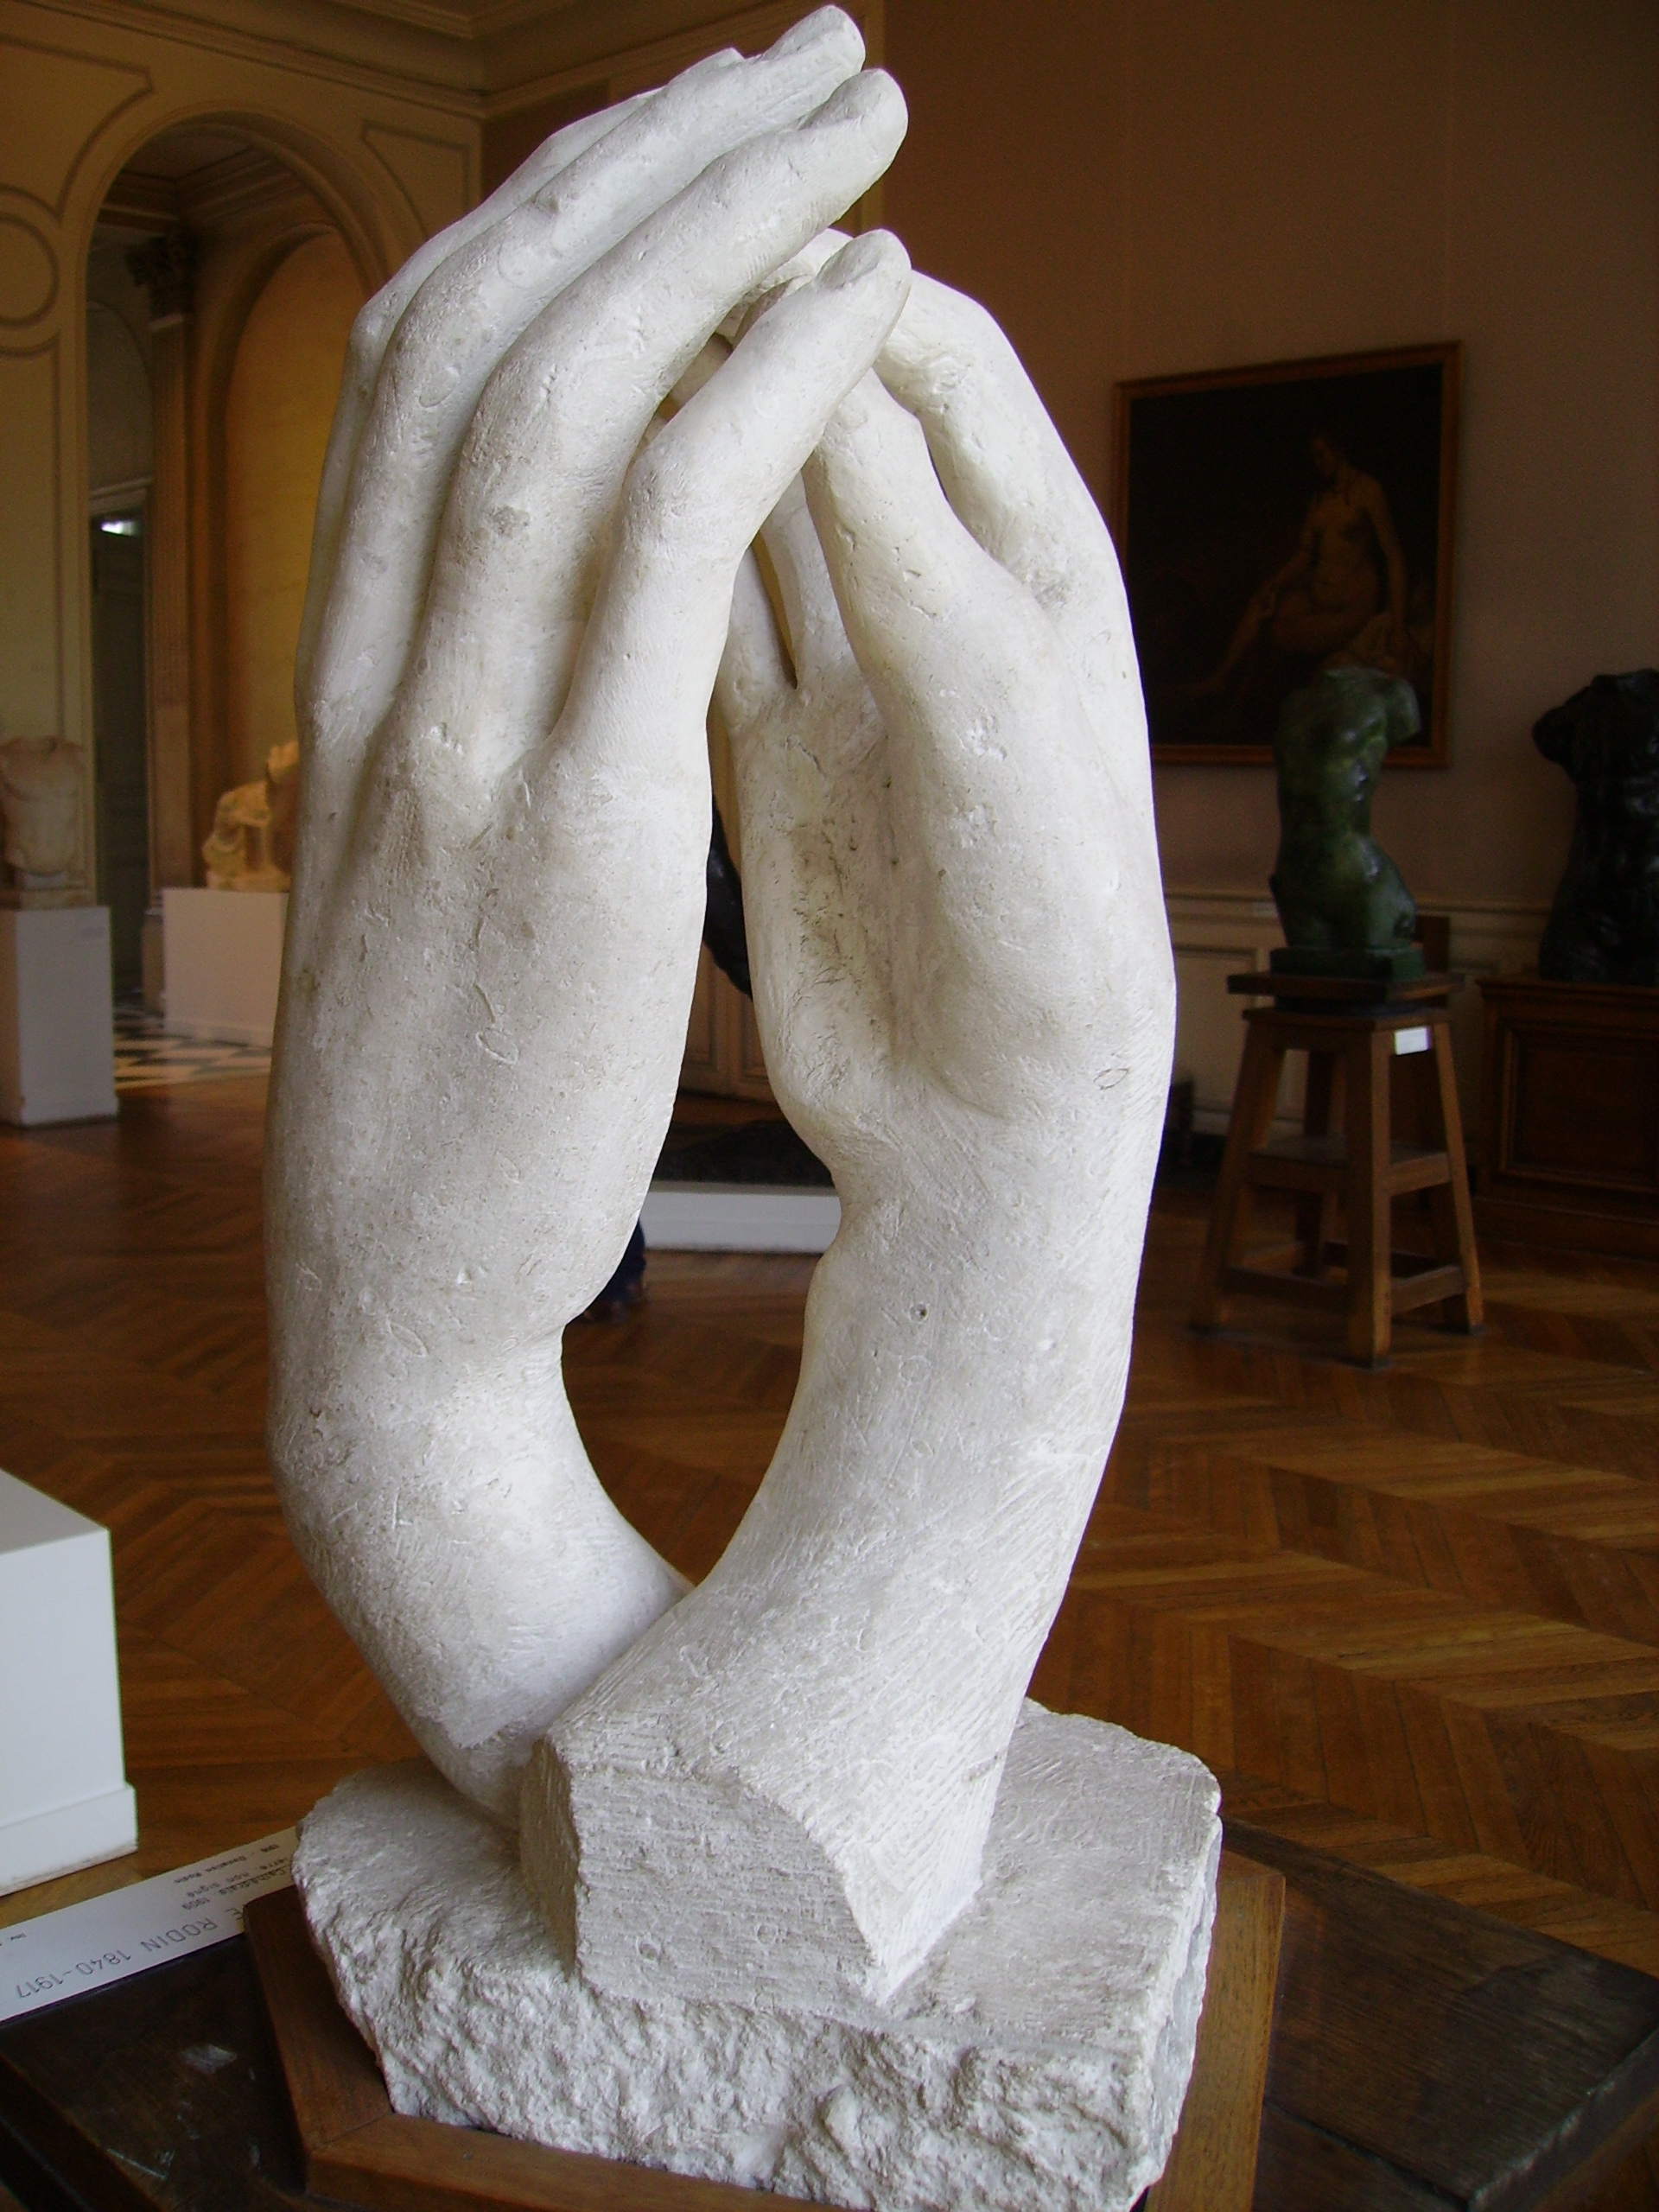 File:Auguste Rodin-The Cathedral-Rodin Museum, Paris.jpg ...